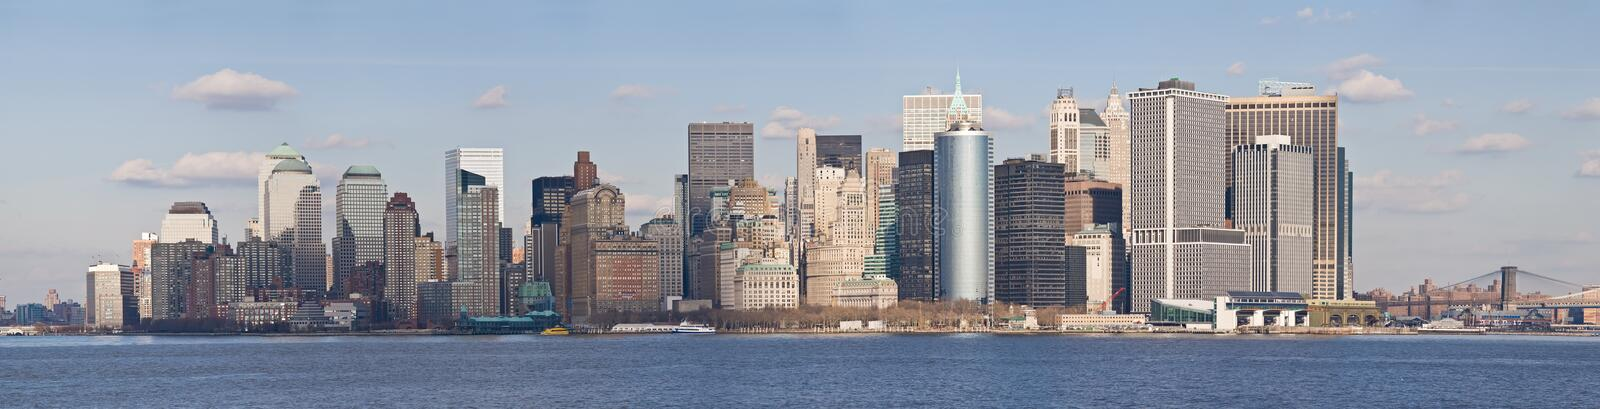 Horizon de New York City/Lower Manhattan photo stock